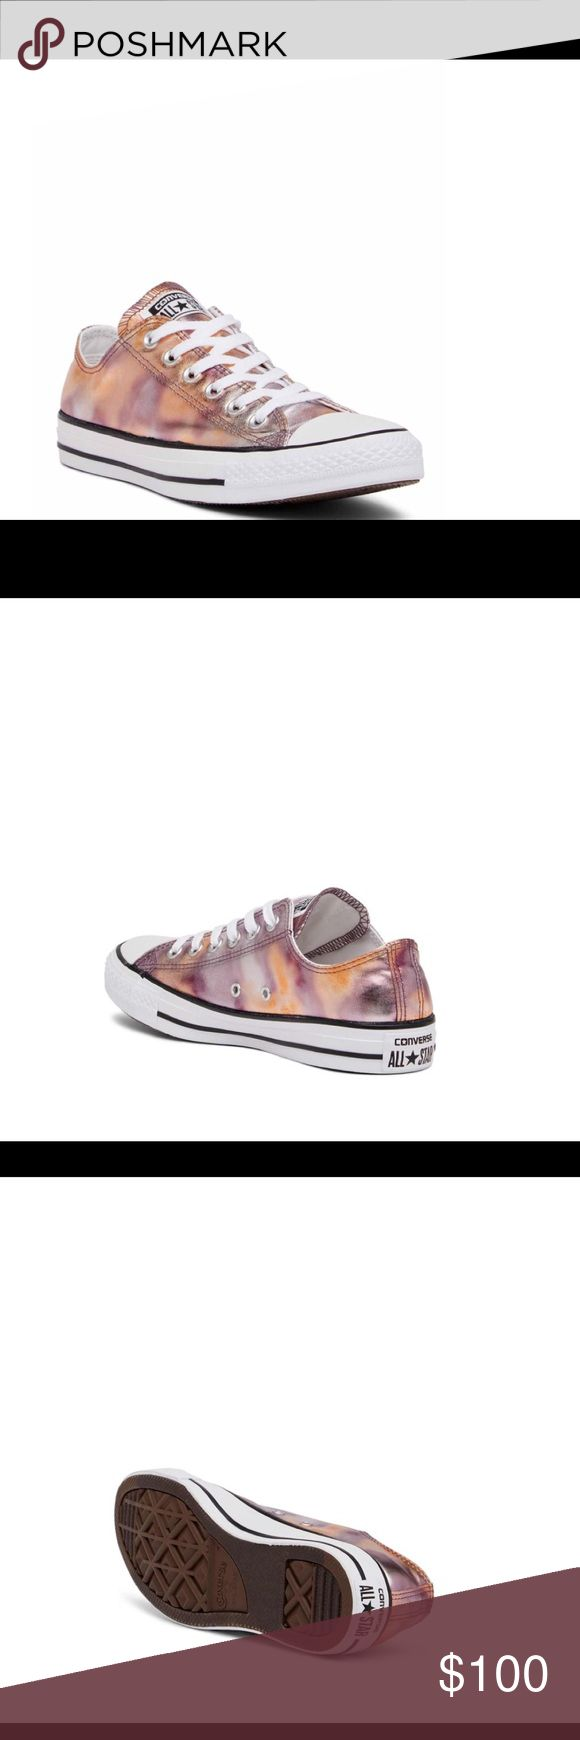 Coming Soon! Metallic Covered Chuck Taylor ~Like this listing to be offered a discounted price when available for purchase!~ Coming Soon! Metallic Covered Chuck Taylor All Star Sneaker Lace up Pink and White Unisex Listed as the women's sizing See photo unisex sizing chart 3 Men's is women's 5  5.5 Men's is women's 7.5 8 Men's is women's 10 Converse Shoes Sneakers